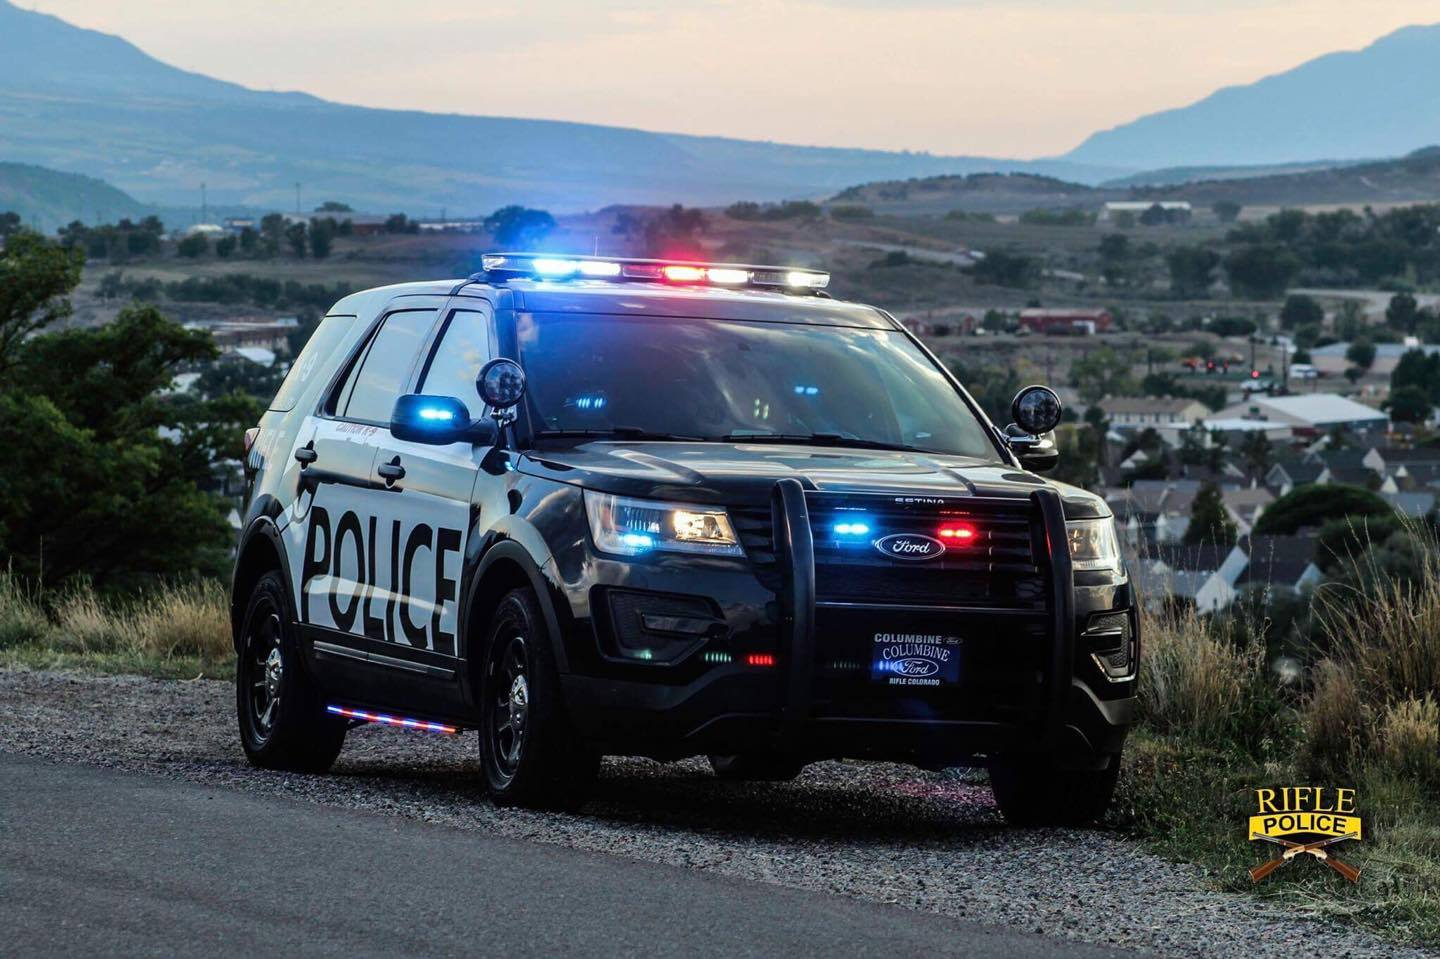 Rifle Police Patrol Vehicle